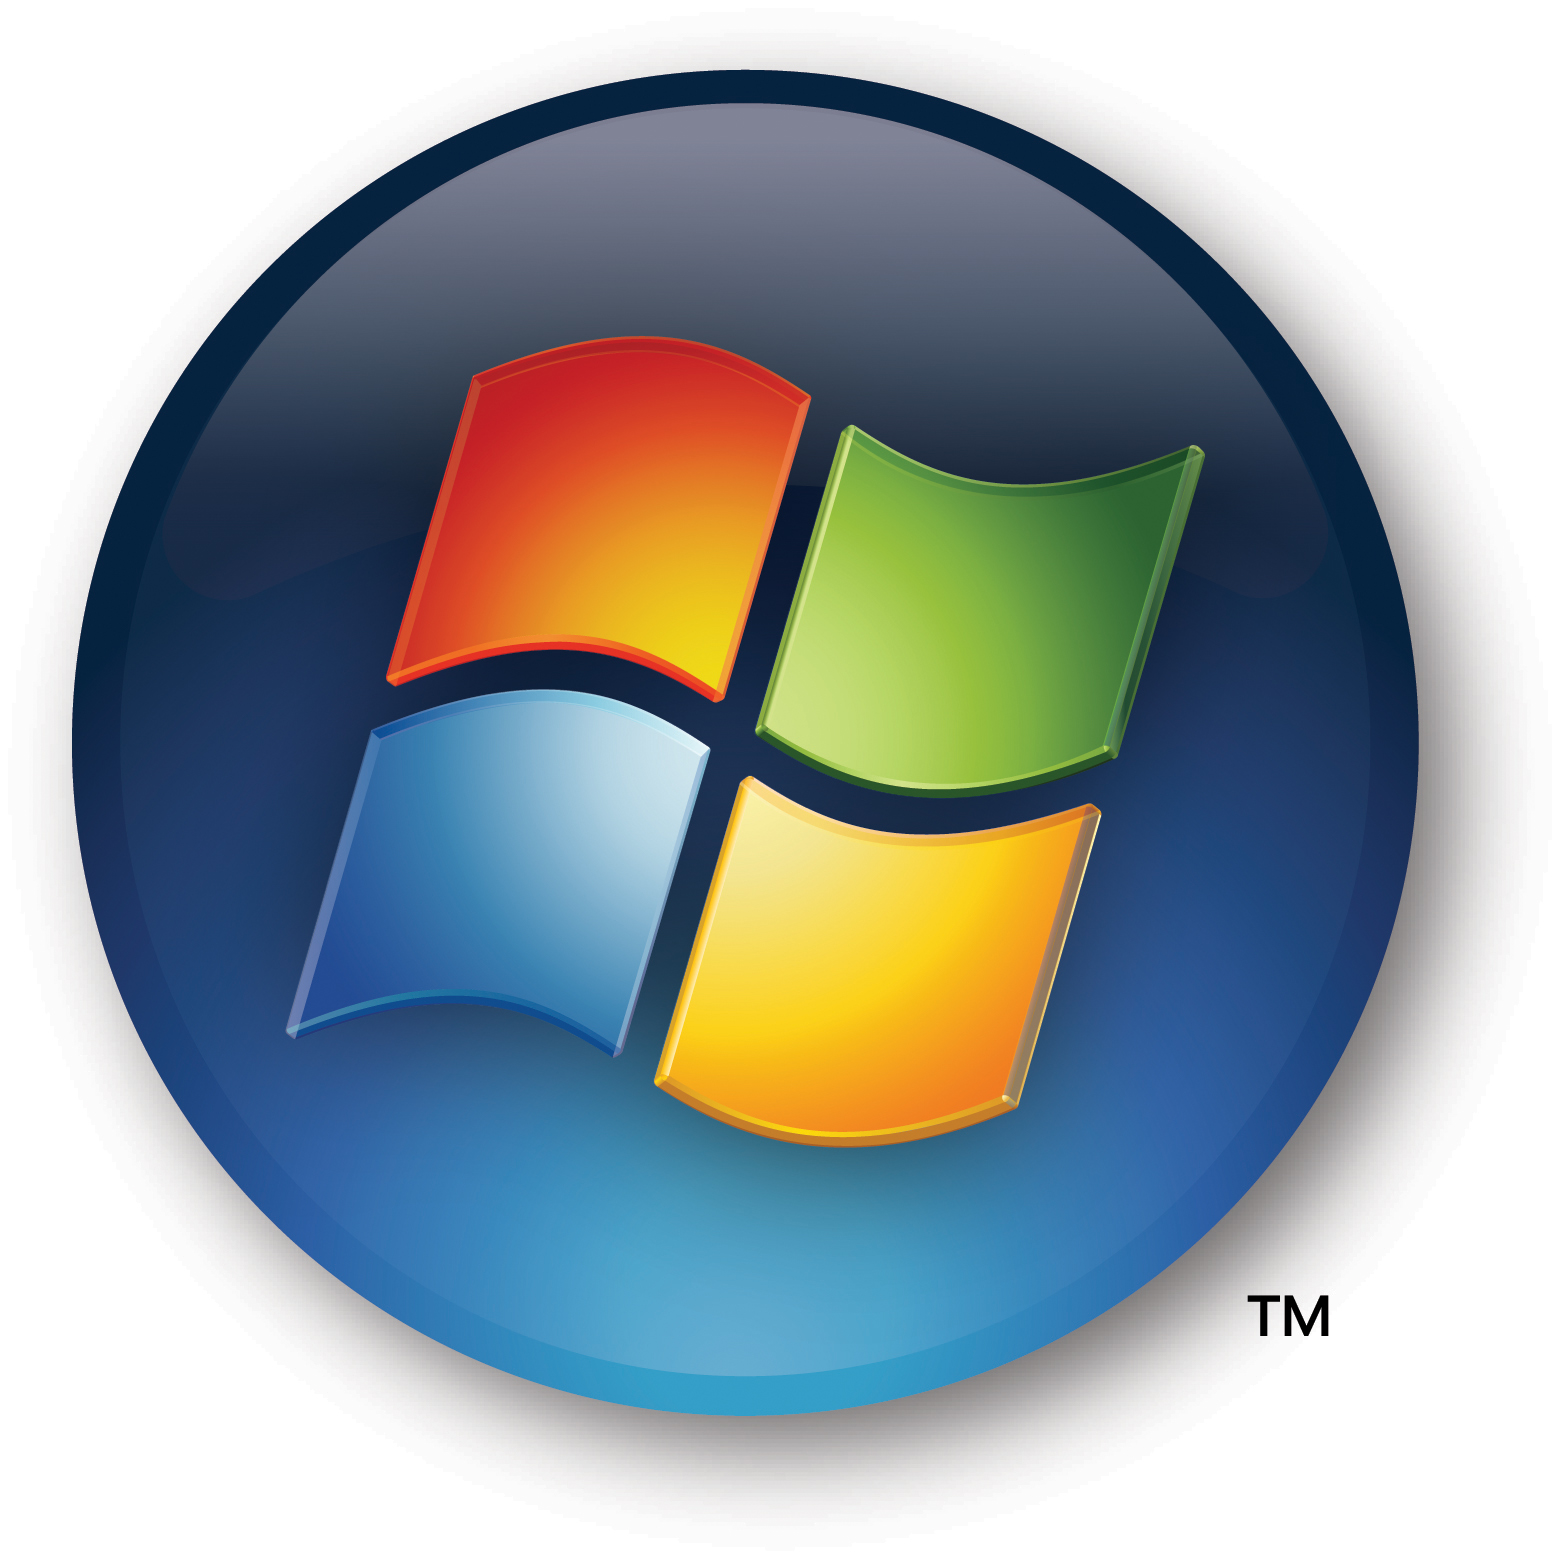 https://i1.wp.com/wiggler.gr/wp-content/microsoft-windows-vista-logo.jpg